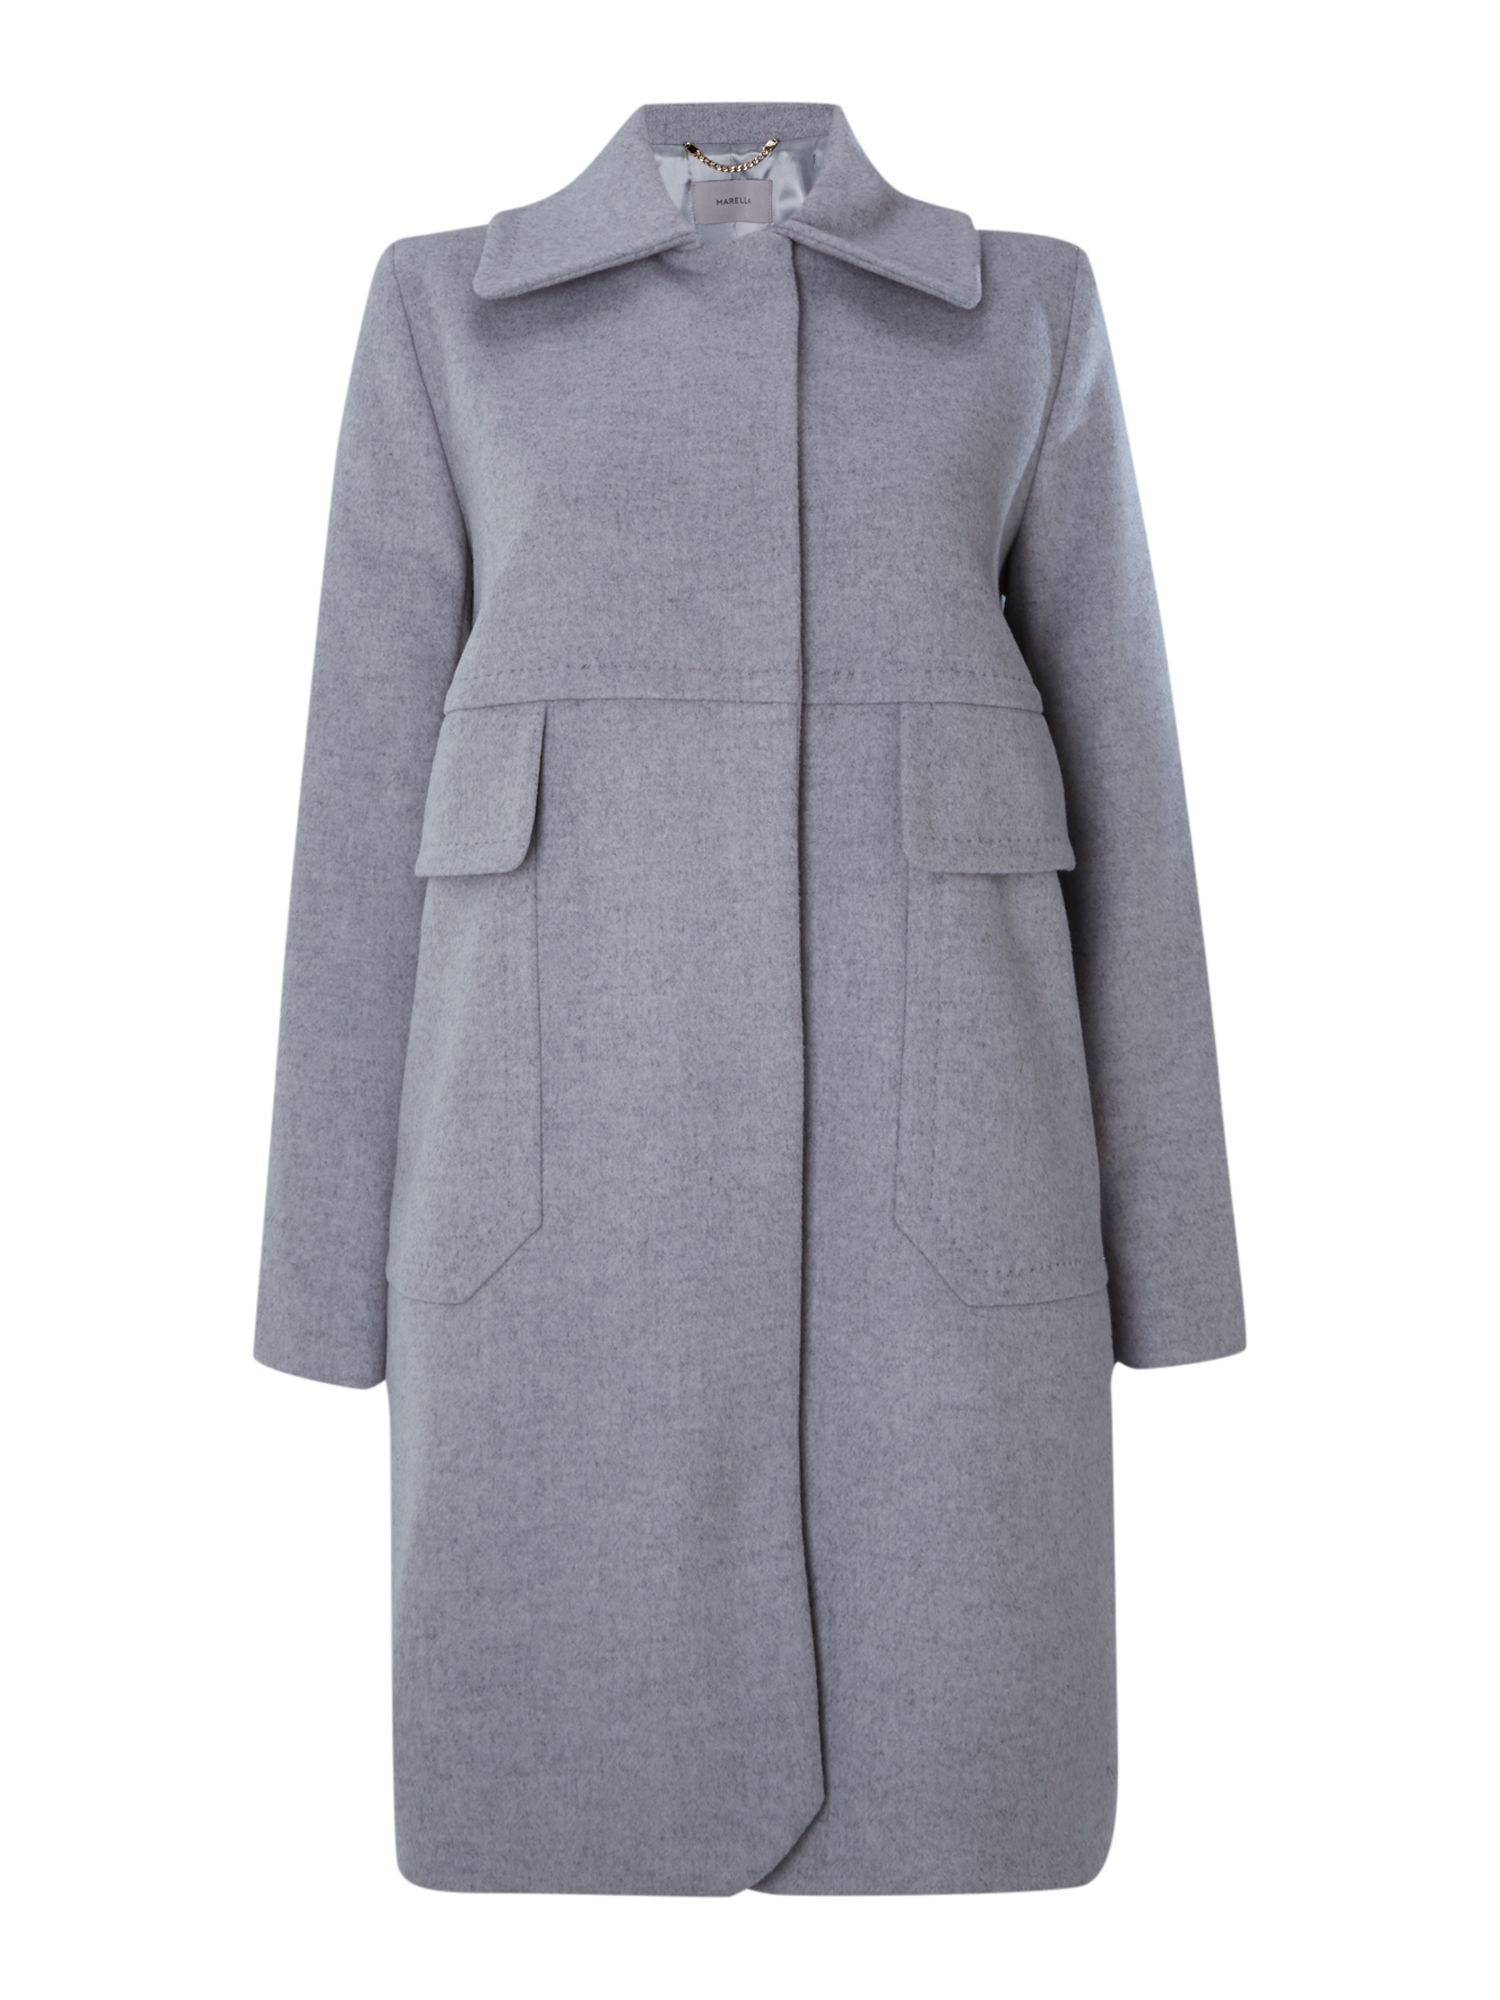 Collared wool coat